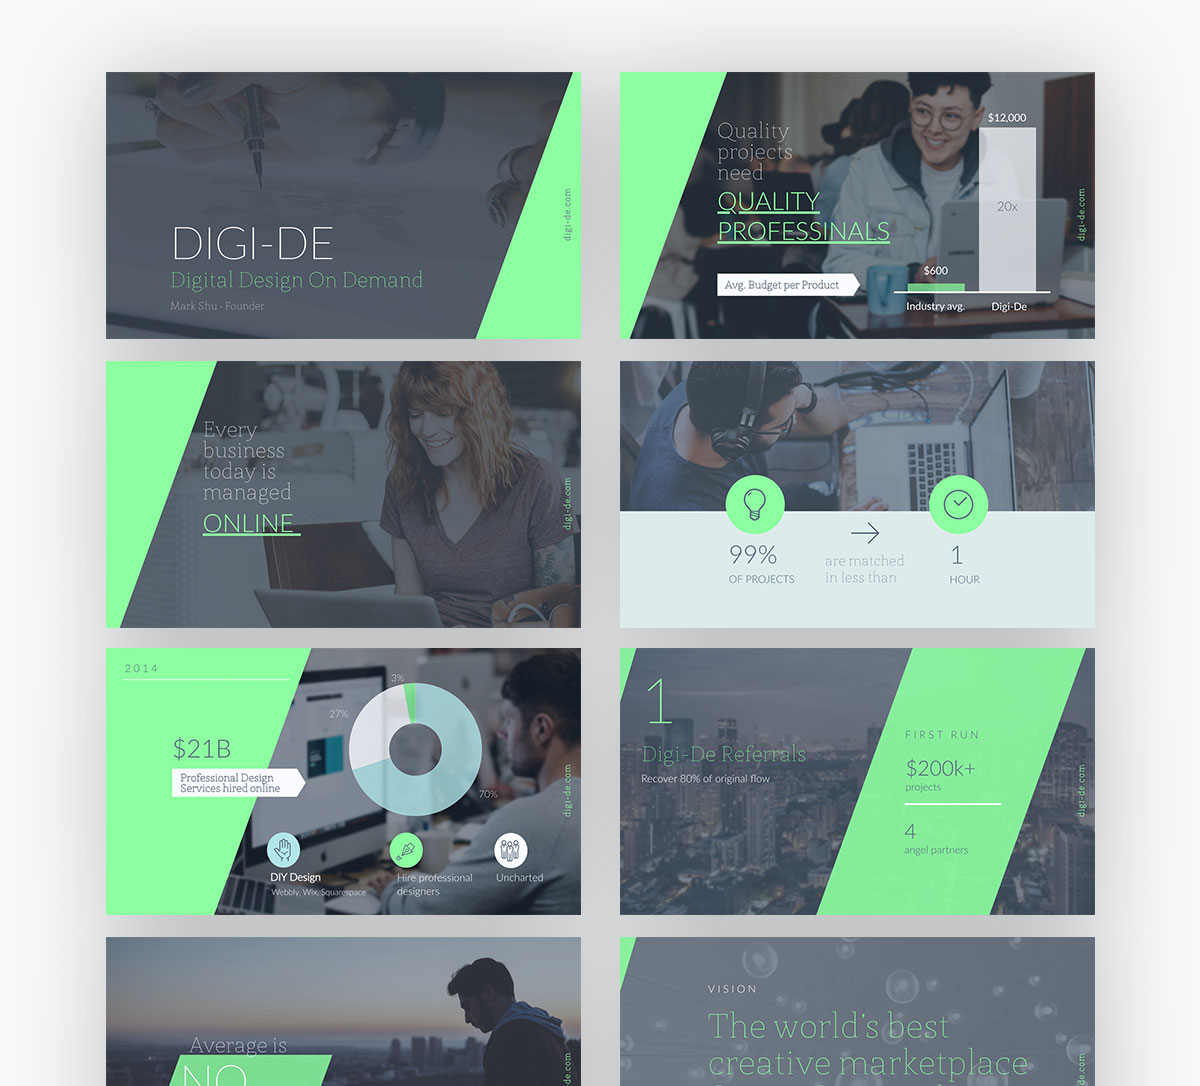 pitch deck design - digi-de pitch deck template